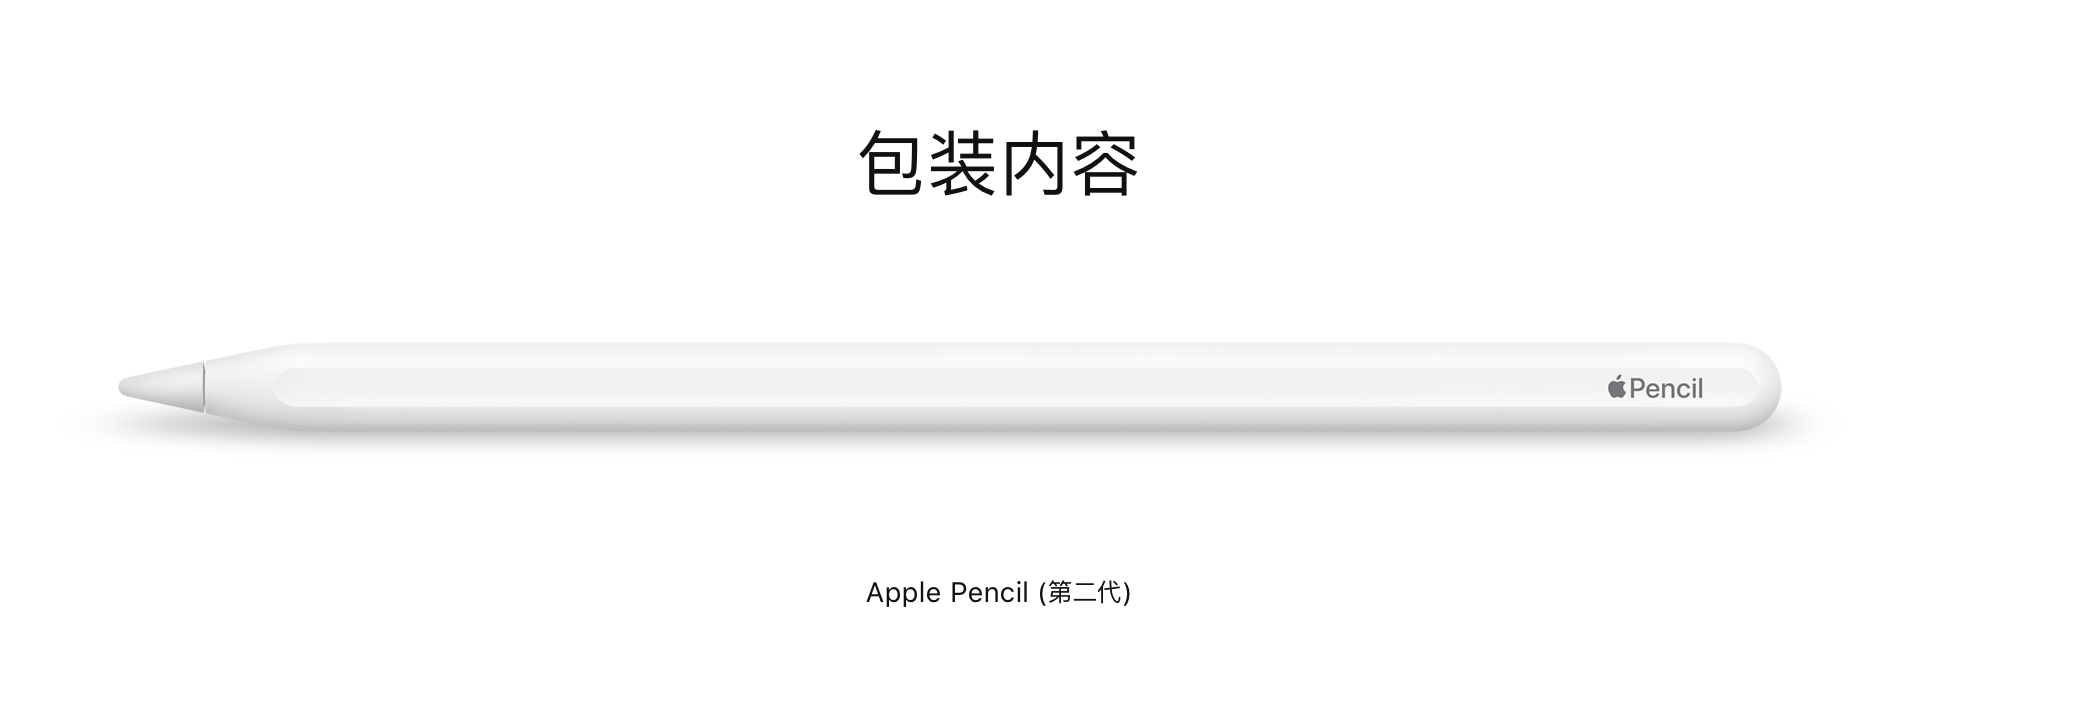 Apple,Pencil